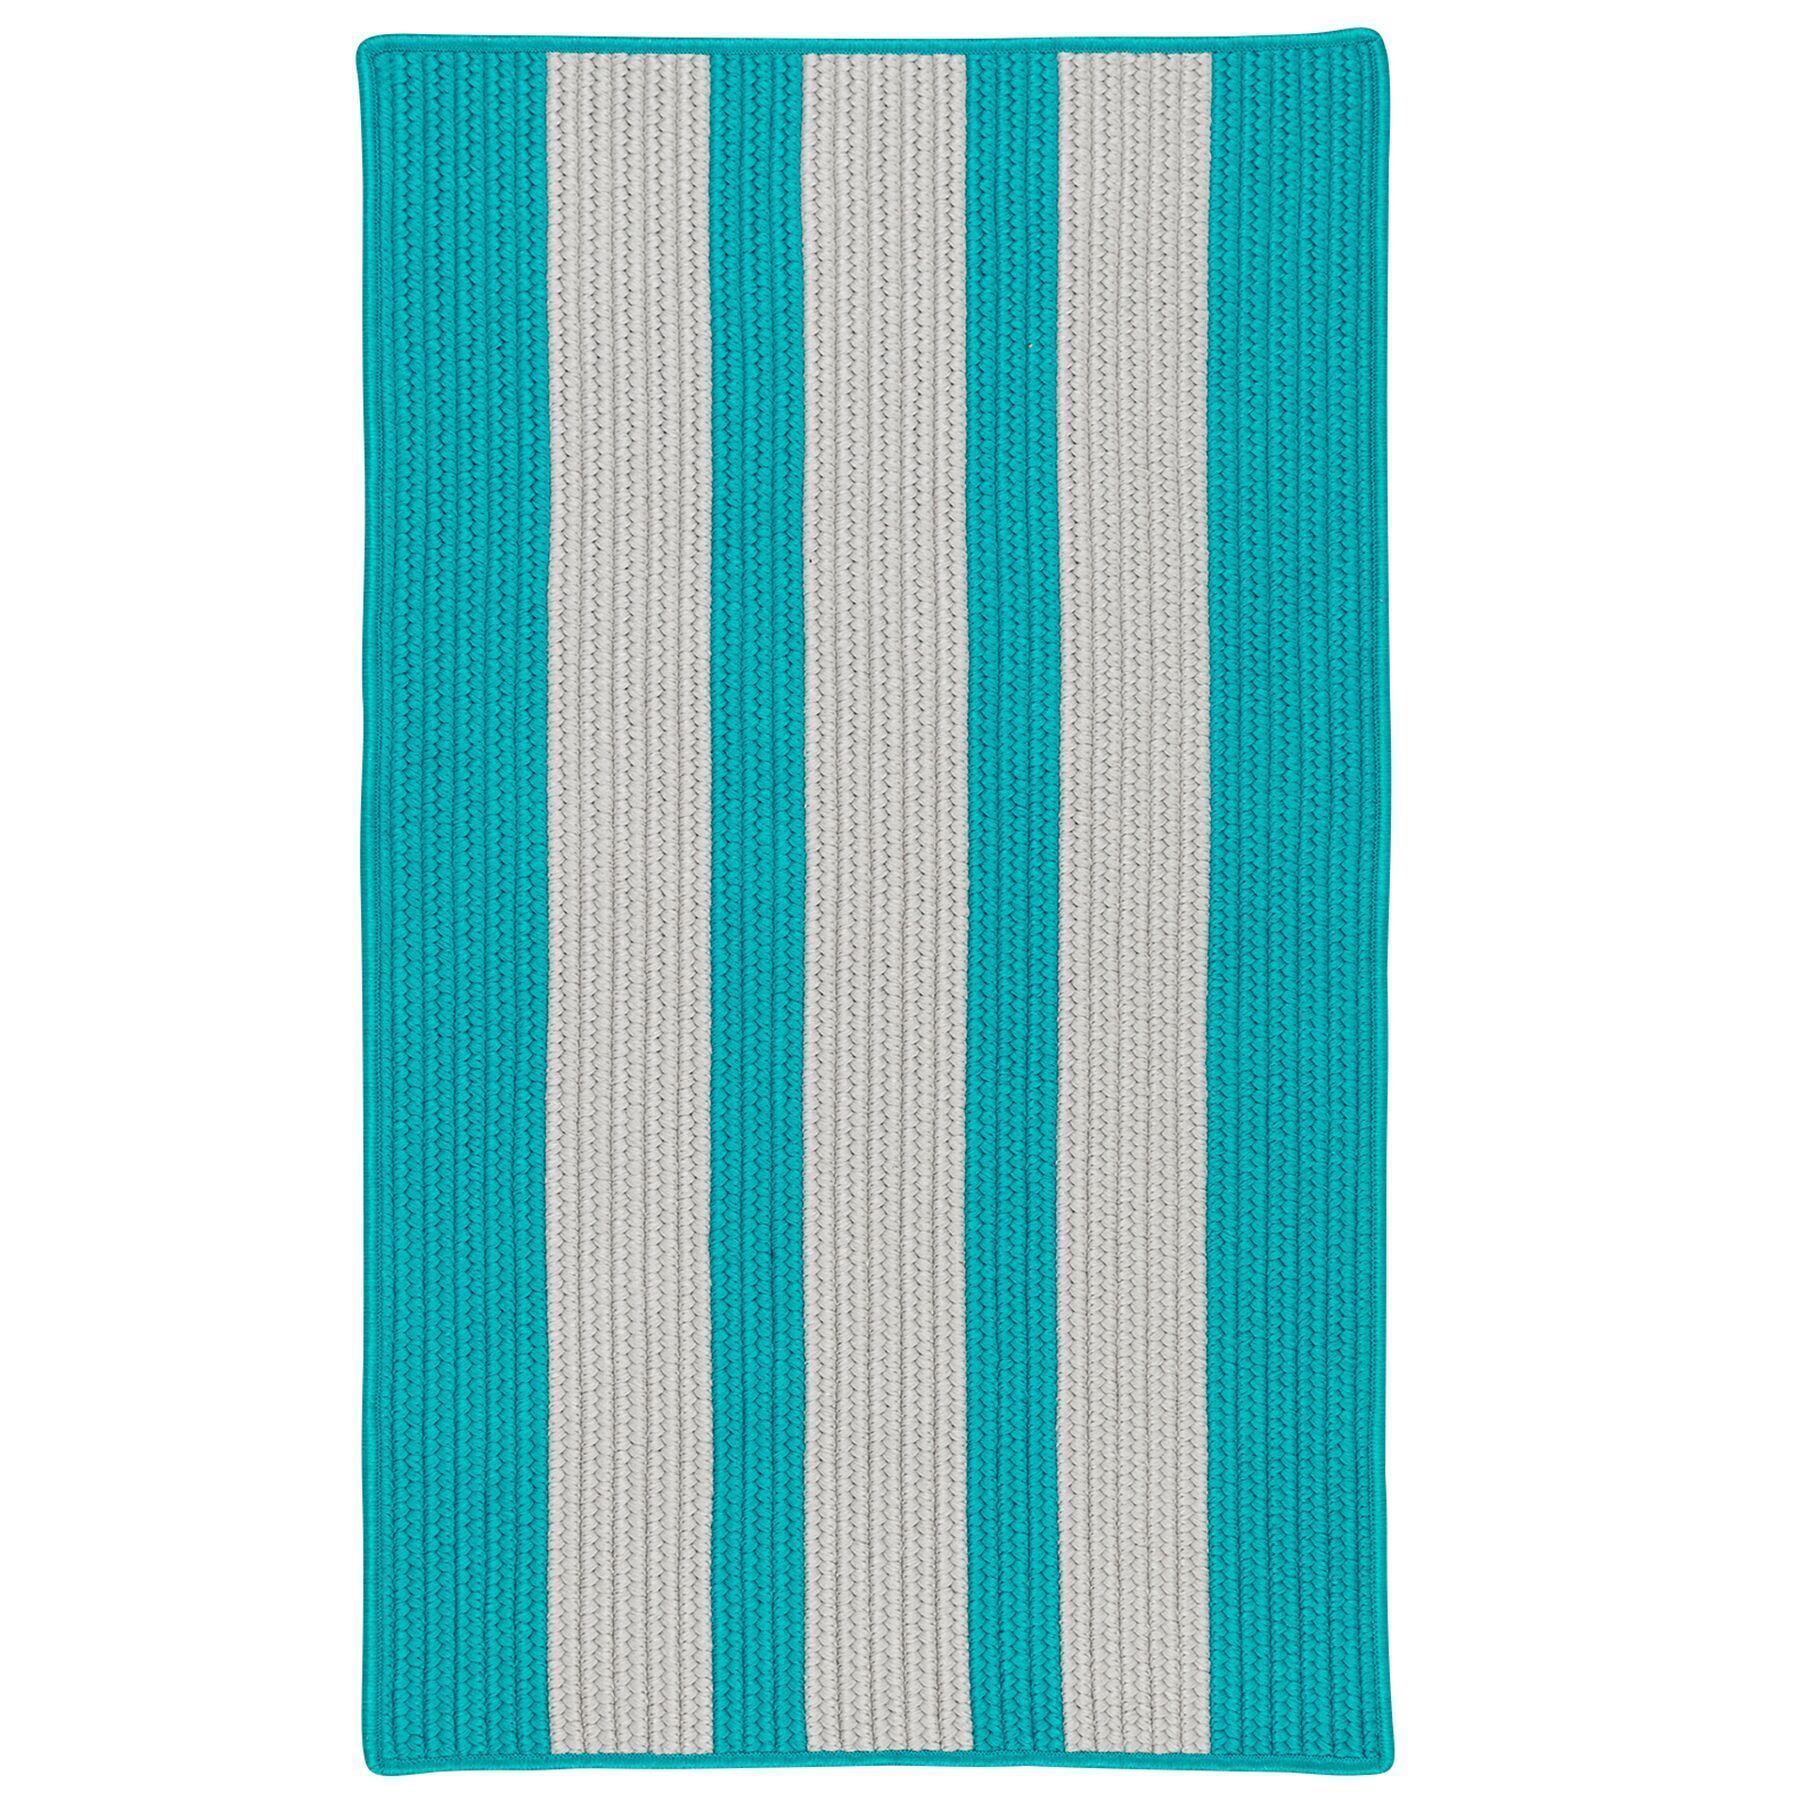 Wes Vertical Stripe Hand-Braided Gray/Turquoise Indoor/Outdoor Area Rug Rug Size: Rectangle 5' x 8'